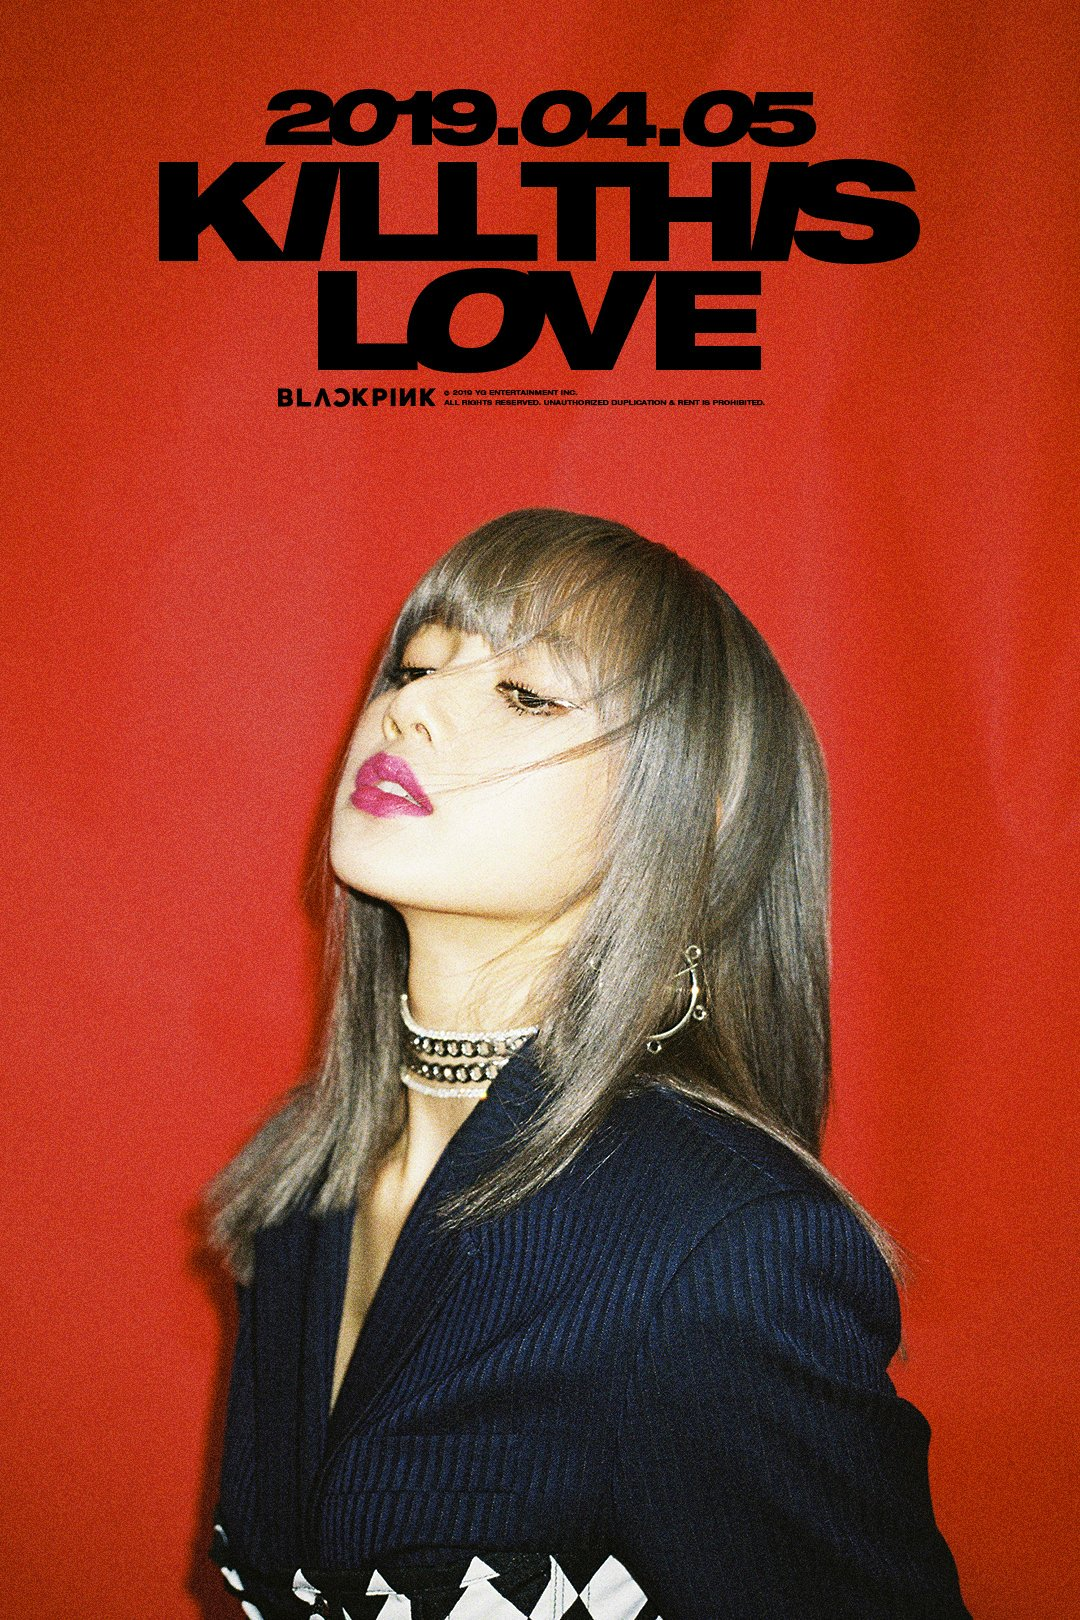 #BLACKPINK (@ygofficialblink) is BACK! The new single + EP #KillThisLove out 4/5.   RT if you can't wait! https://t.co/xOPCsN41gu